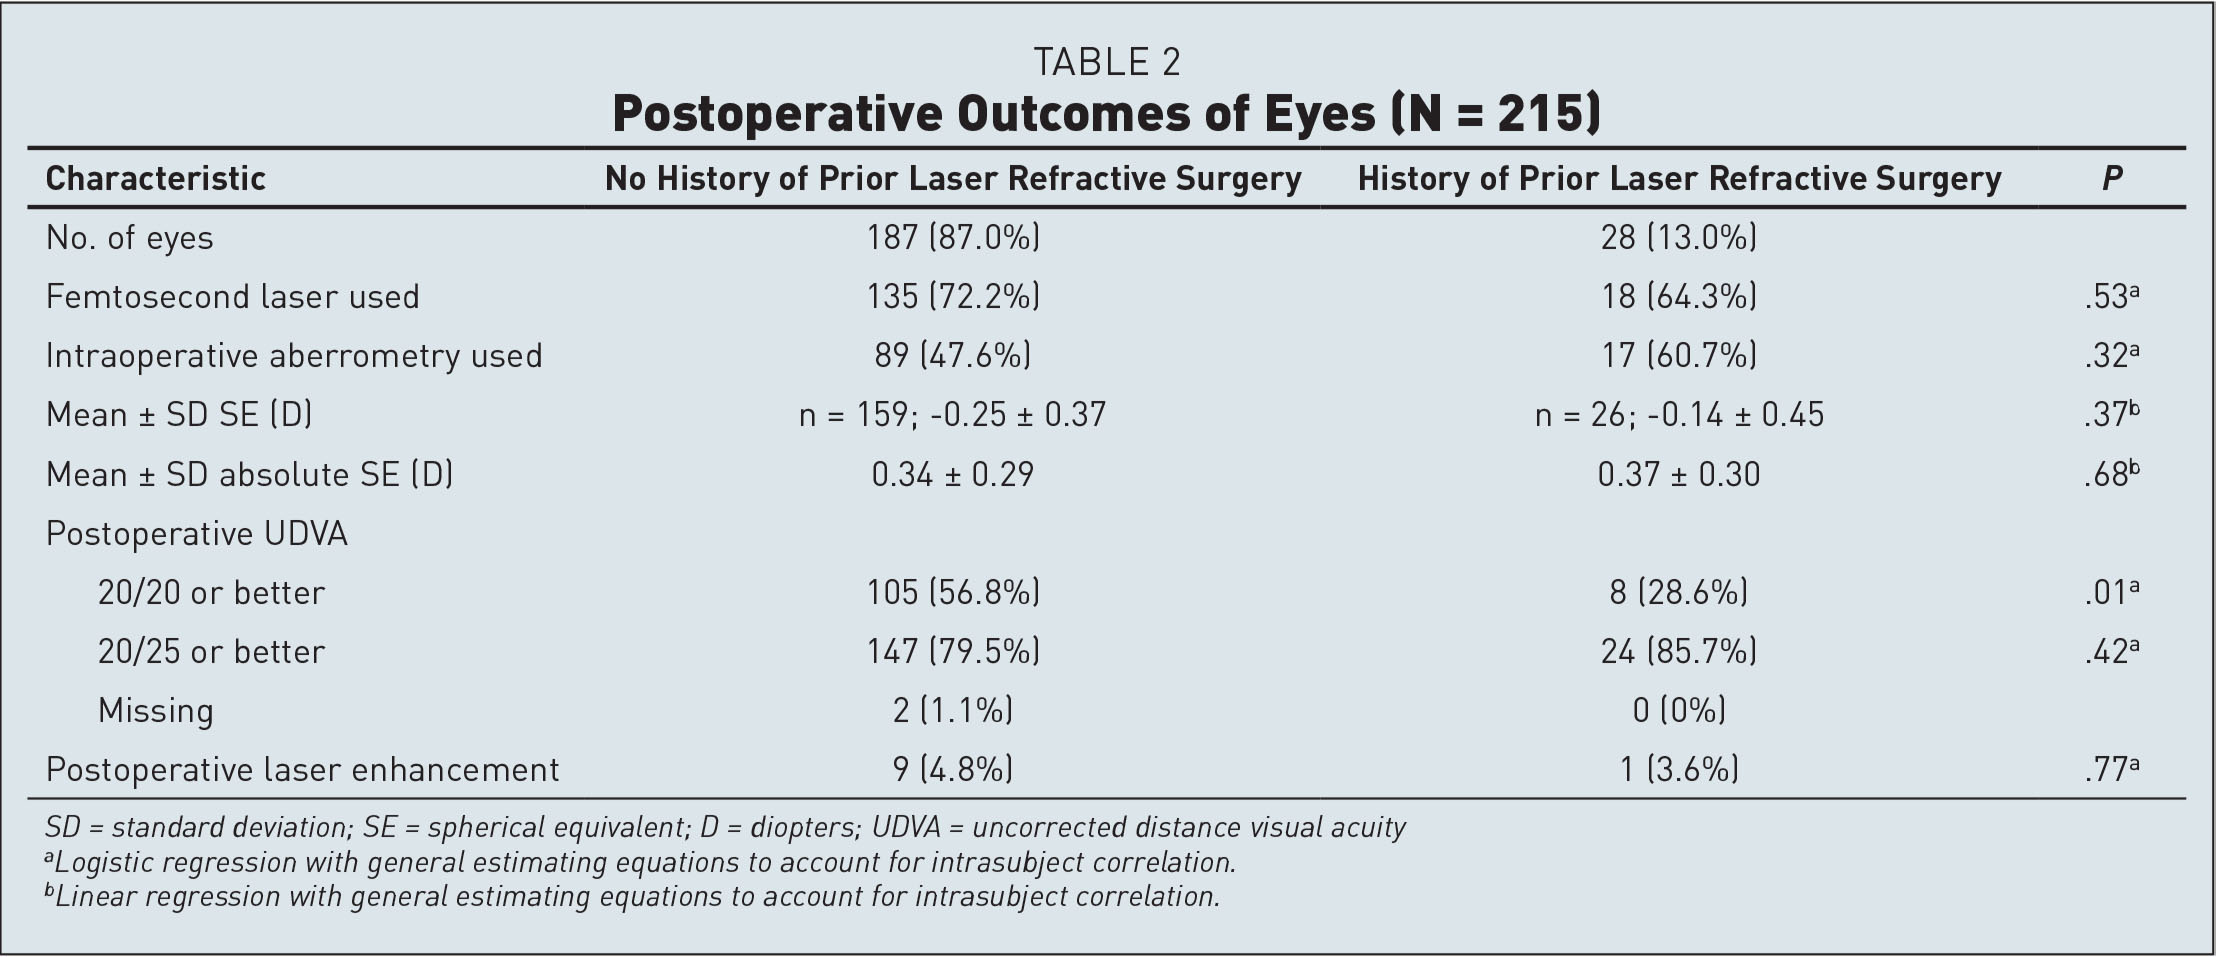 Postoperative Outcomes of Eyes (N = 215)